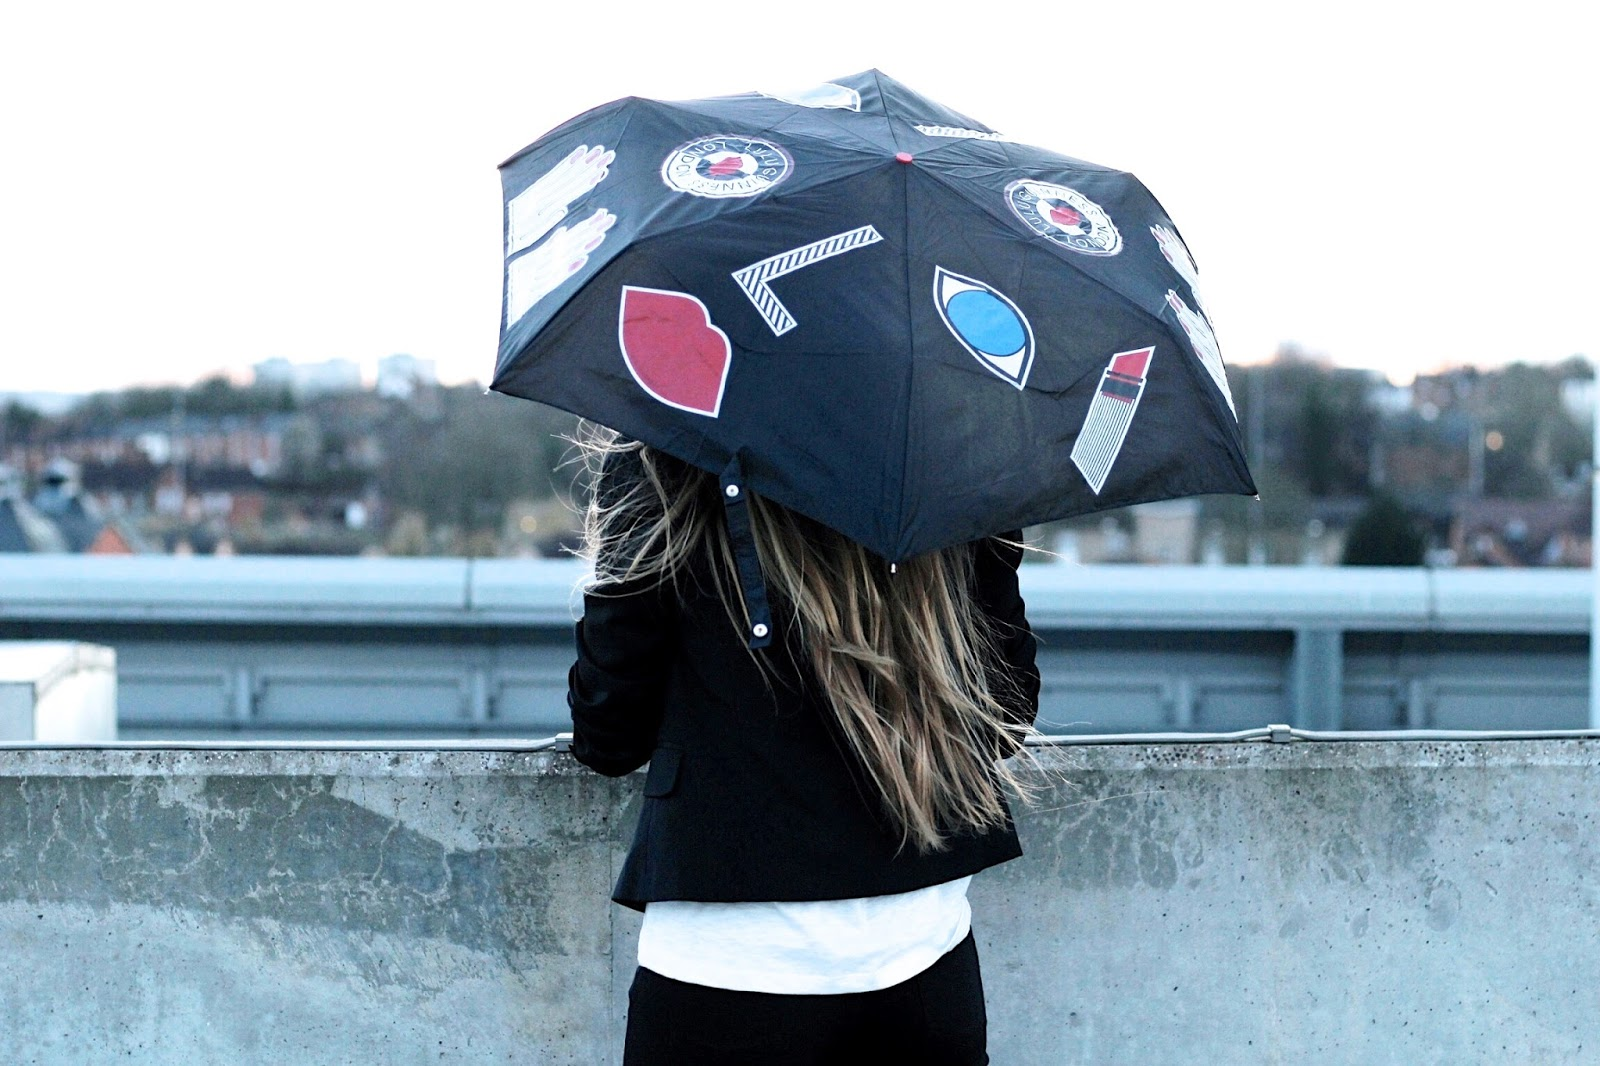 Fulton Lulu Guinness Superslim 2 Stickers Umbrella